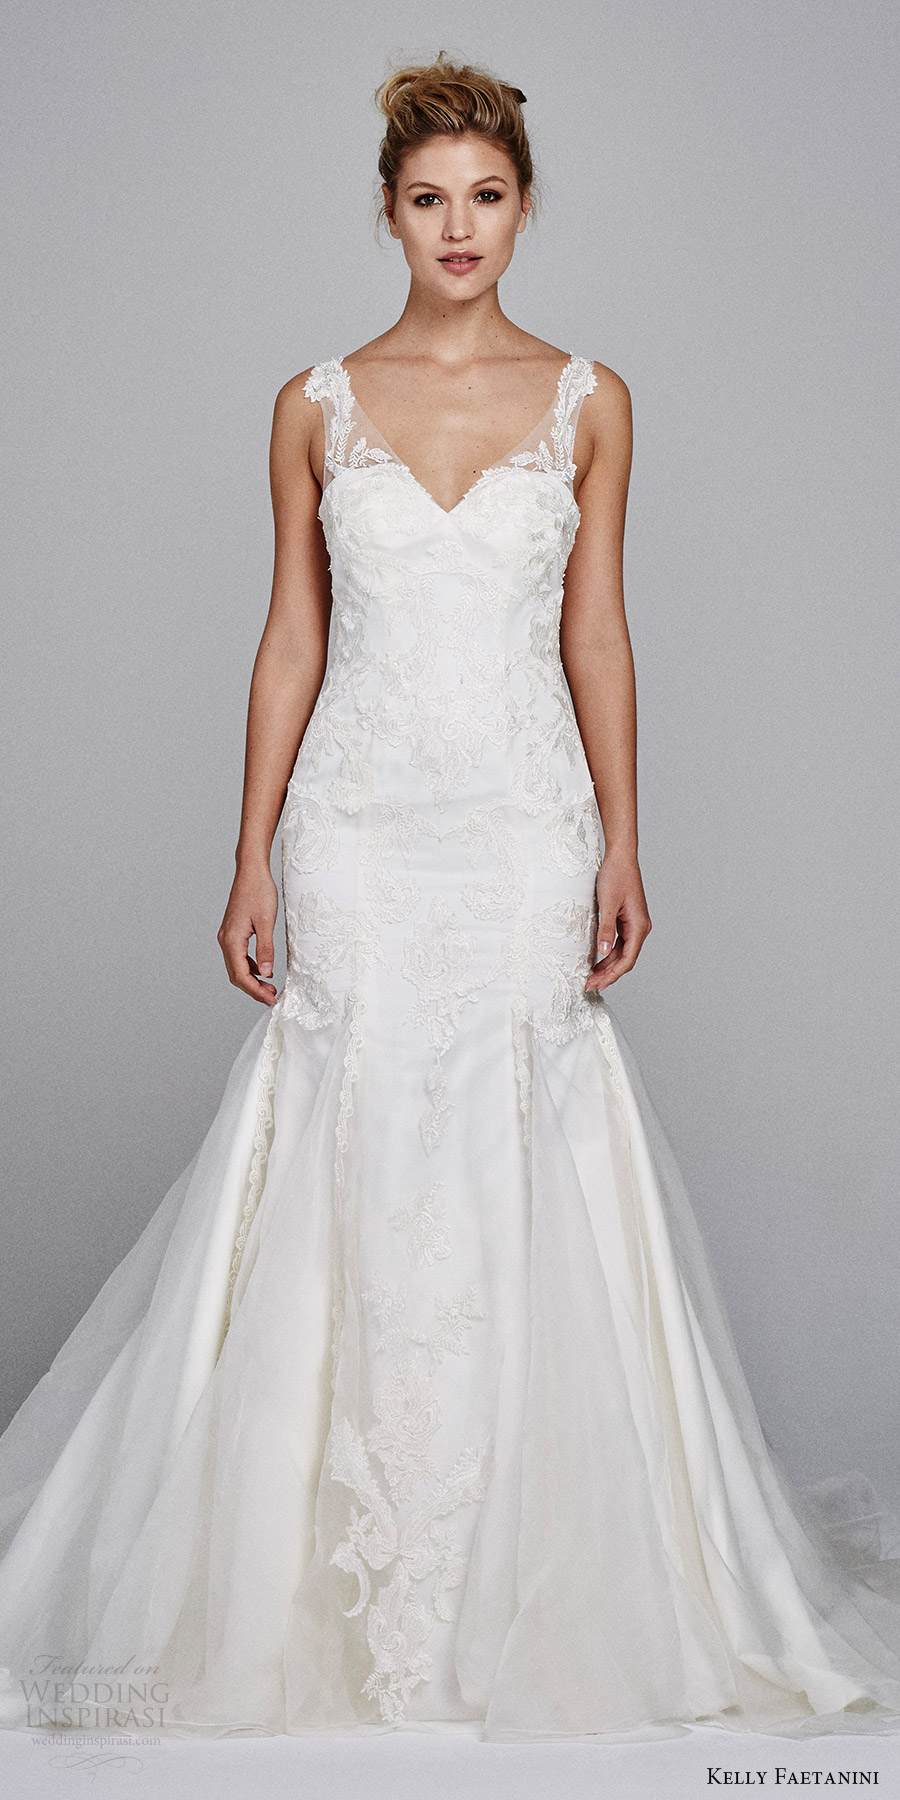 kelly faetanini bridal fall 2017 sleeveless illusion straps vneck mermaid lace wedding dress (rosemary) mv